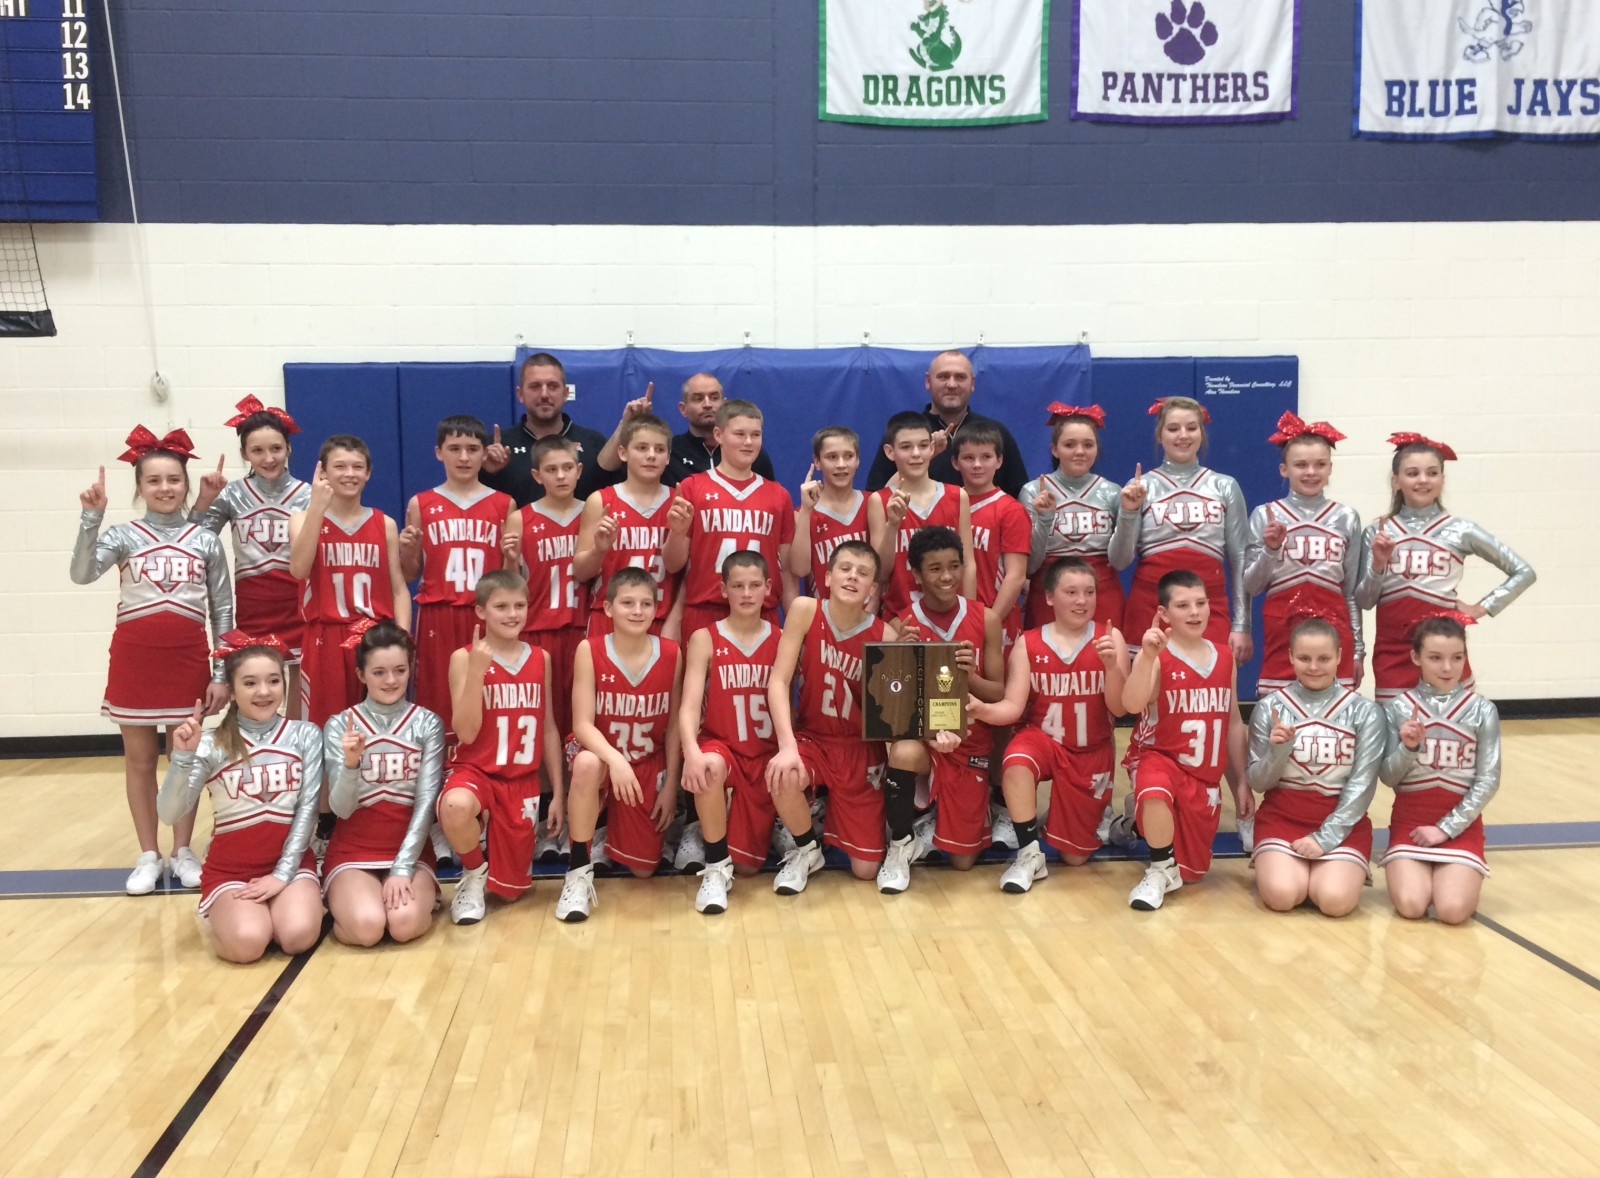 7th Grade Vandals Win Sectional Title and Are Headed To State